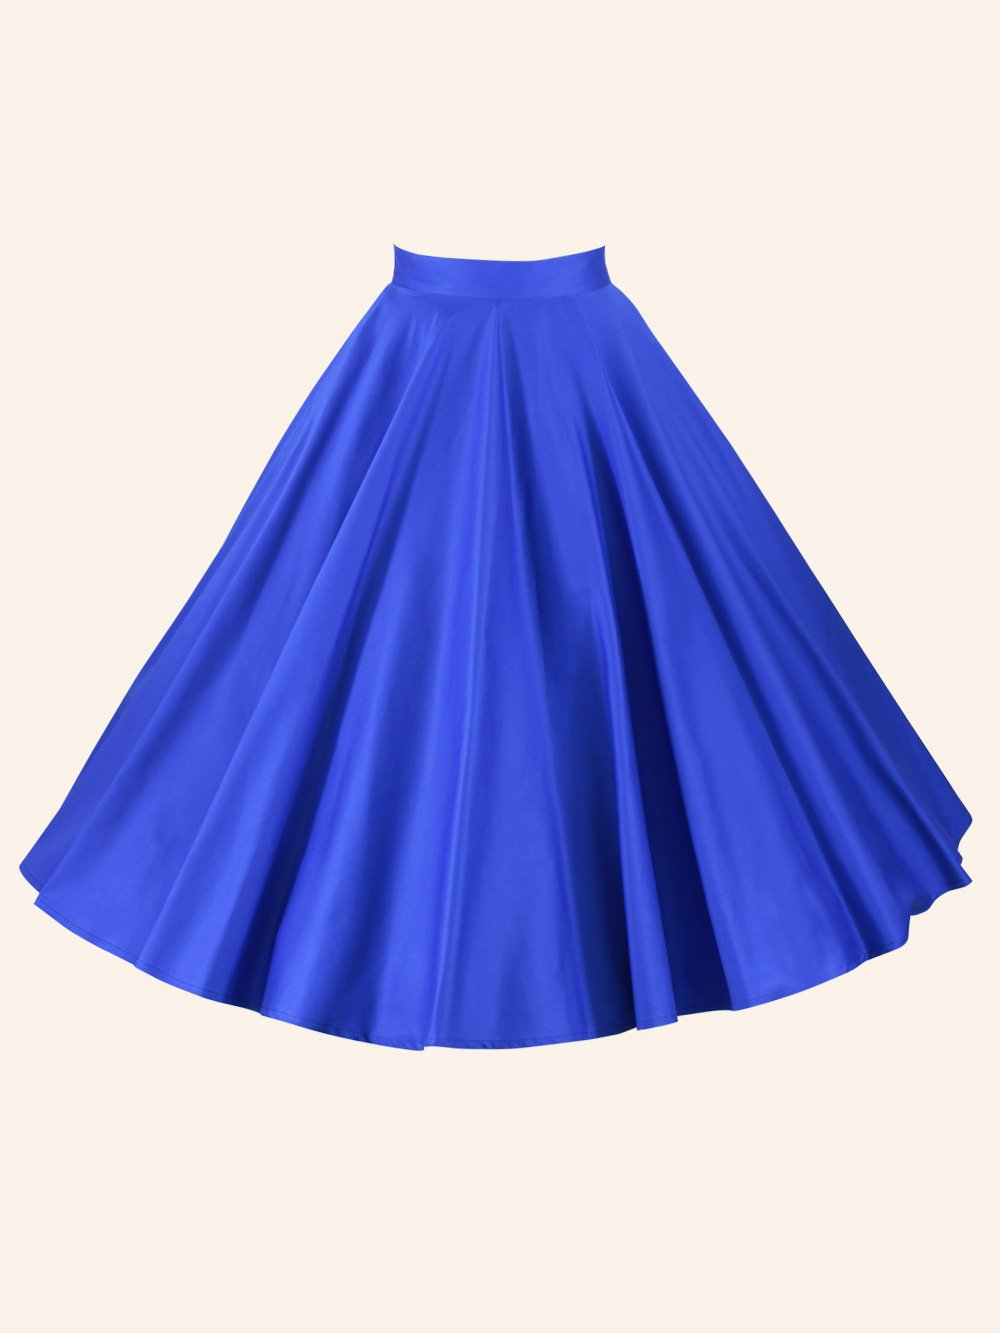 View All 1950s Circle Skirts View All Red 1950s Circle Skirts